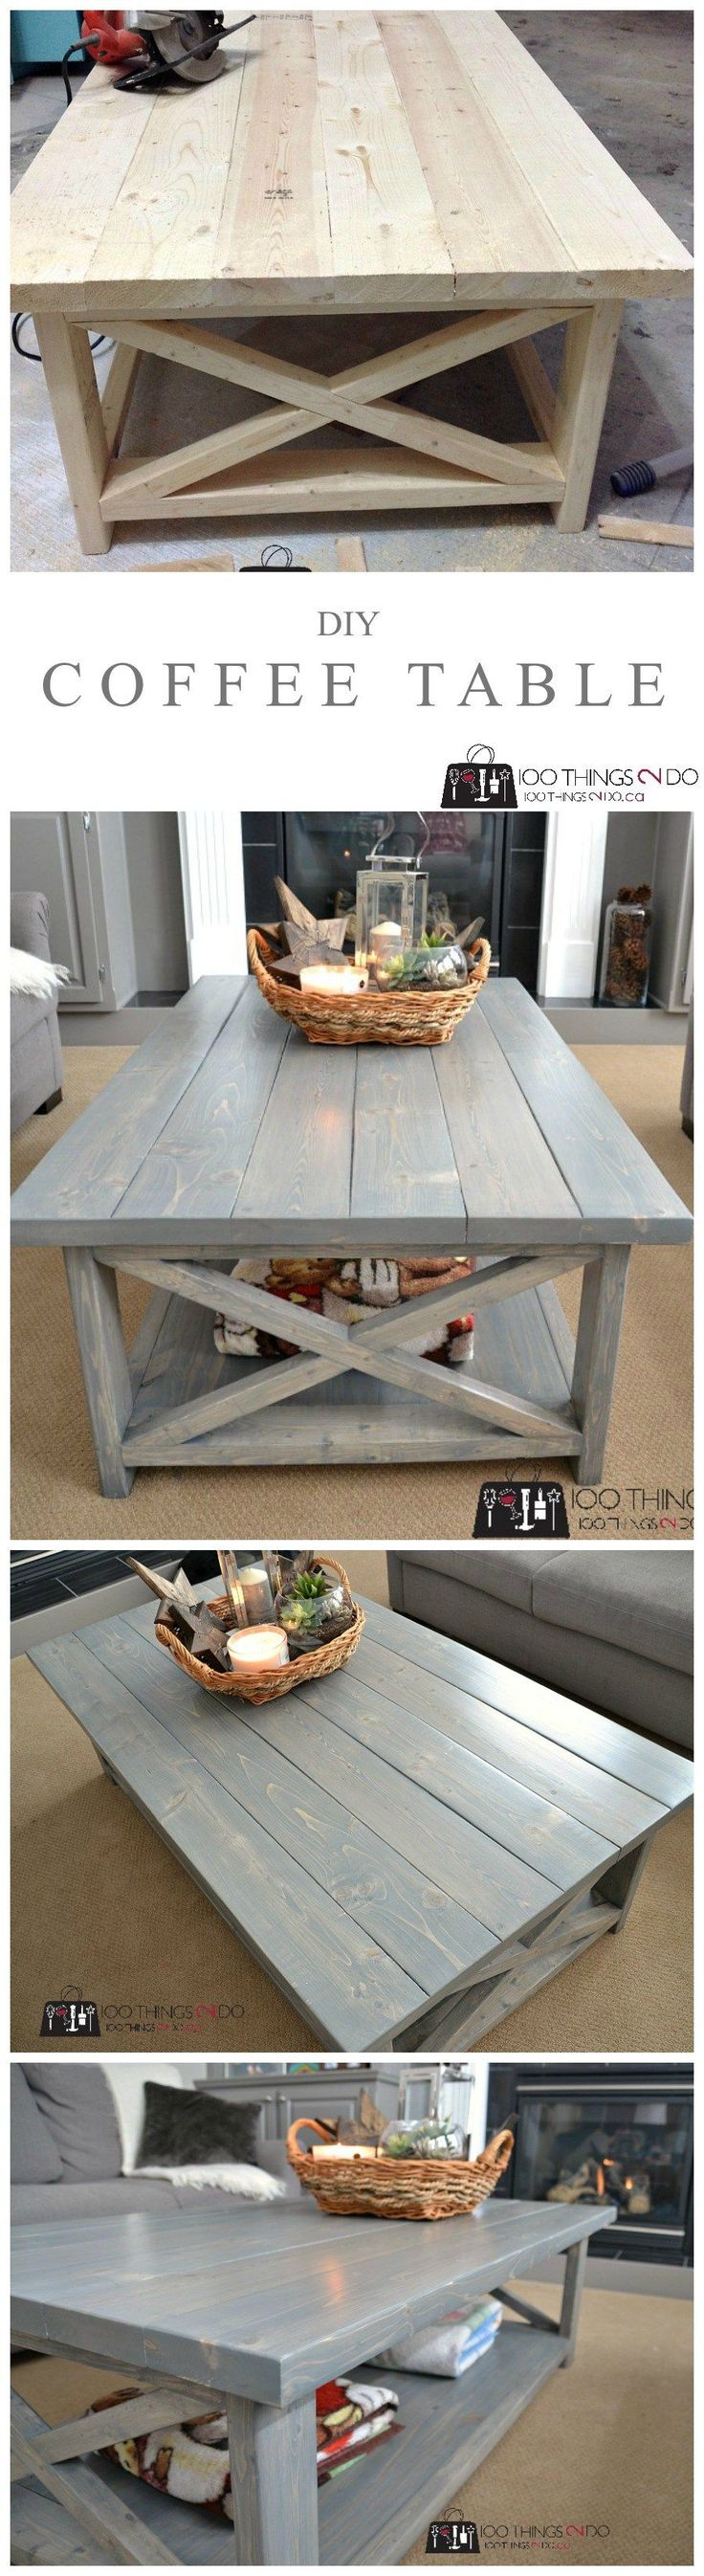 Best 25 Refinished table ideas on Pinterest